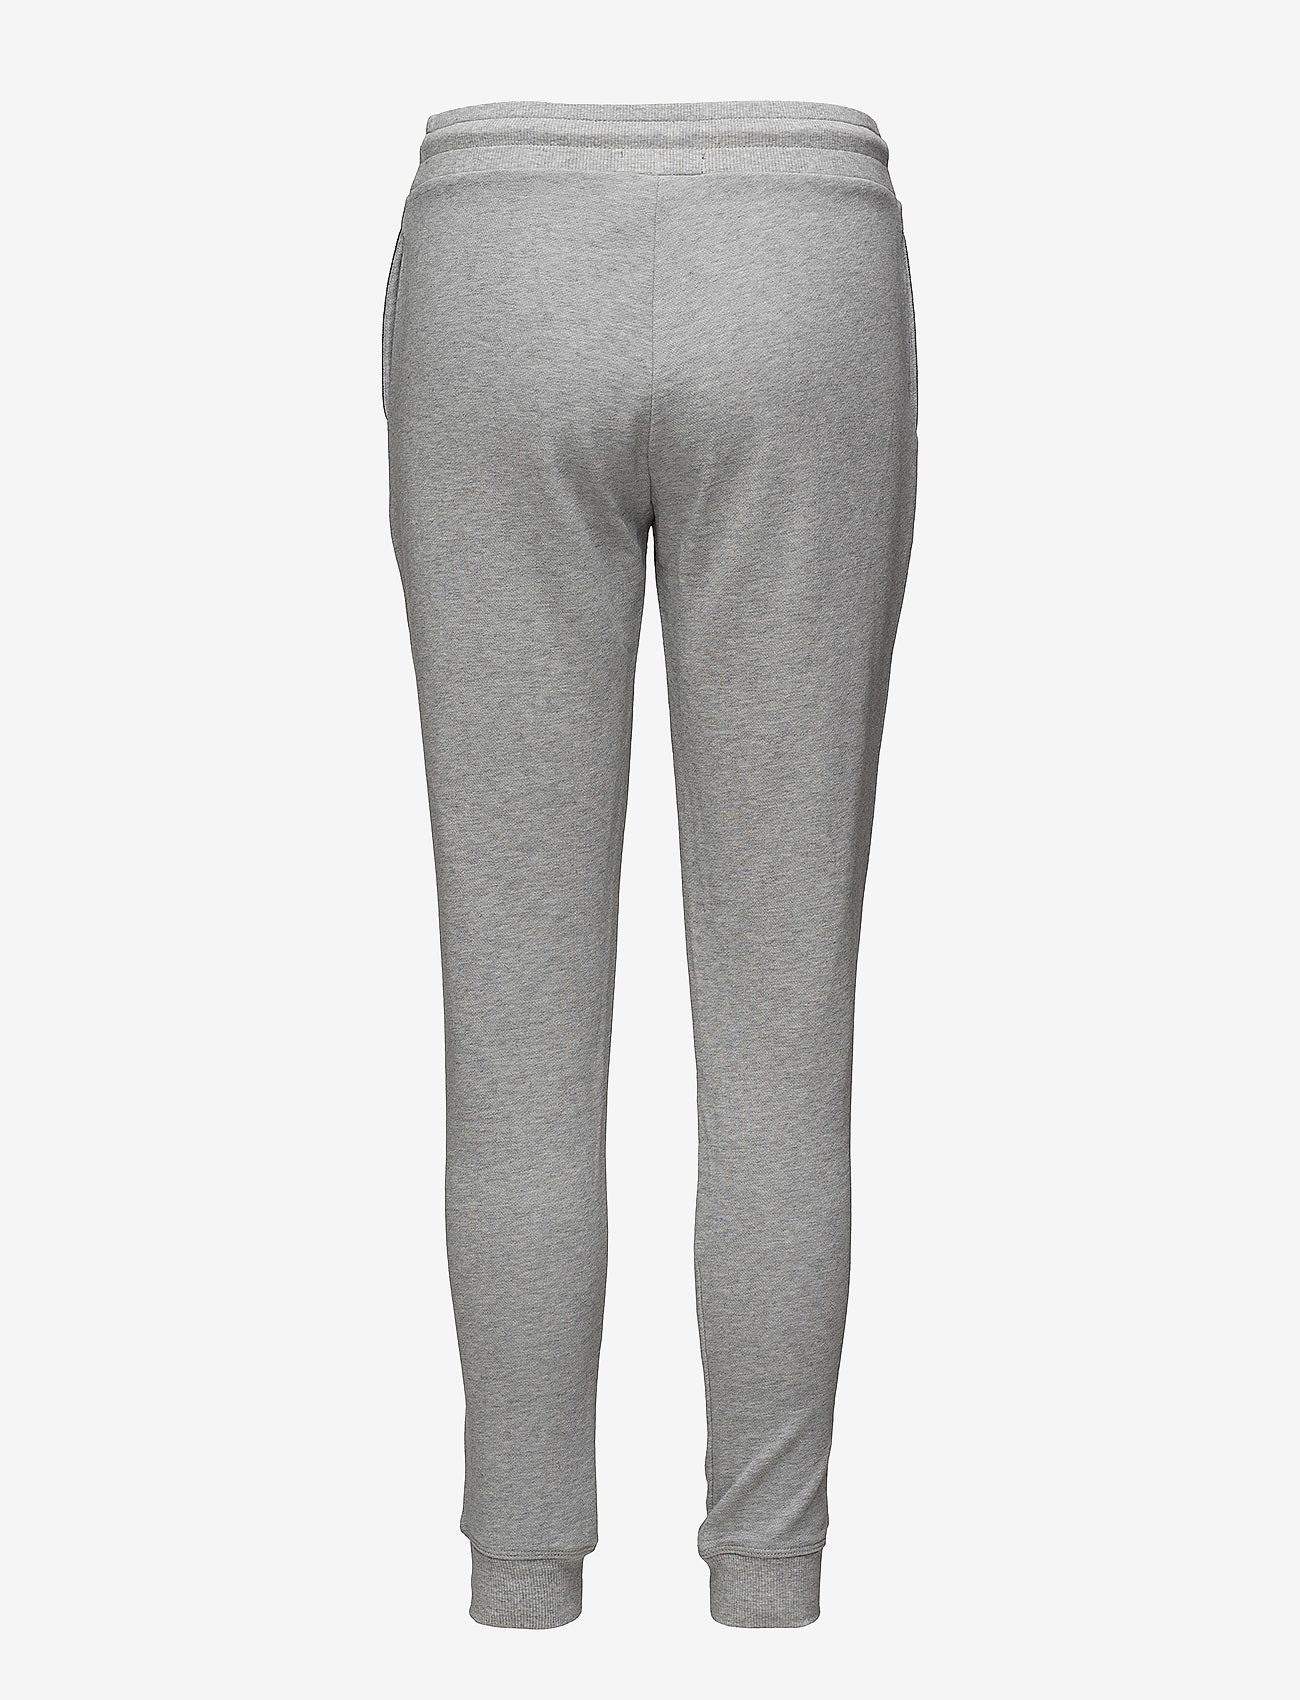 Tommy Hilfiger - TRACK PANT HWK - underdele - grey heather - 1